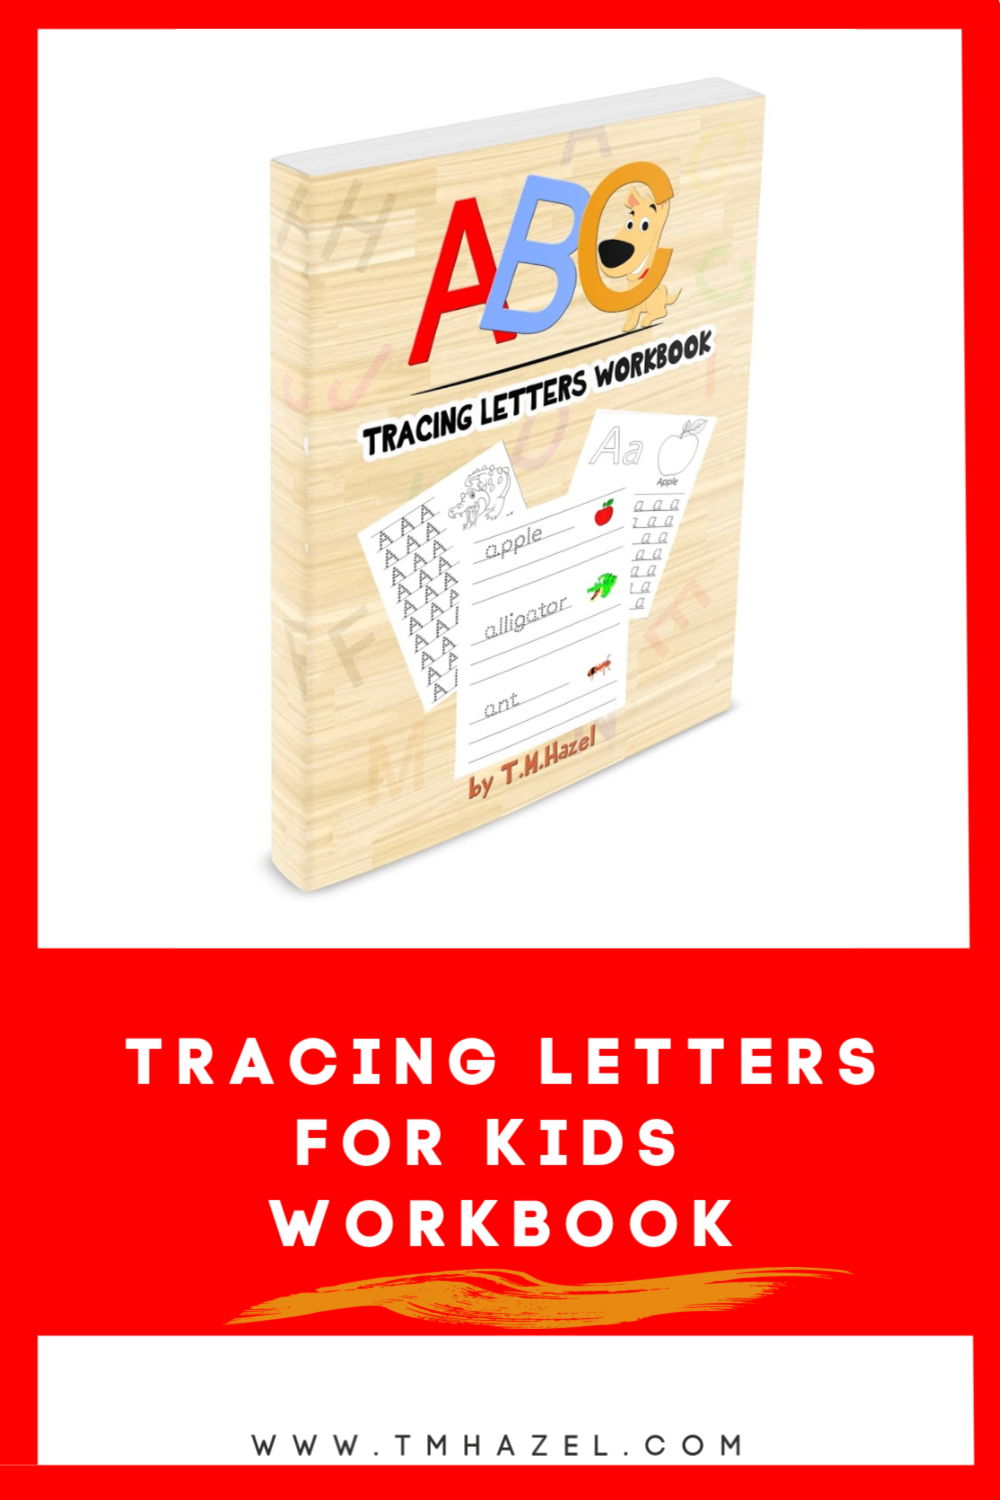 tracing letters workbook